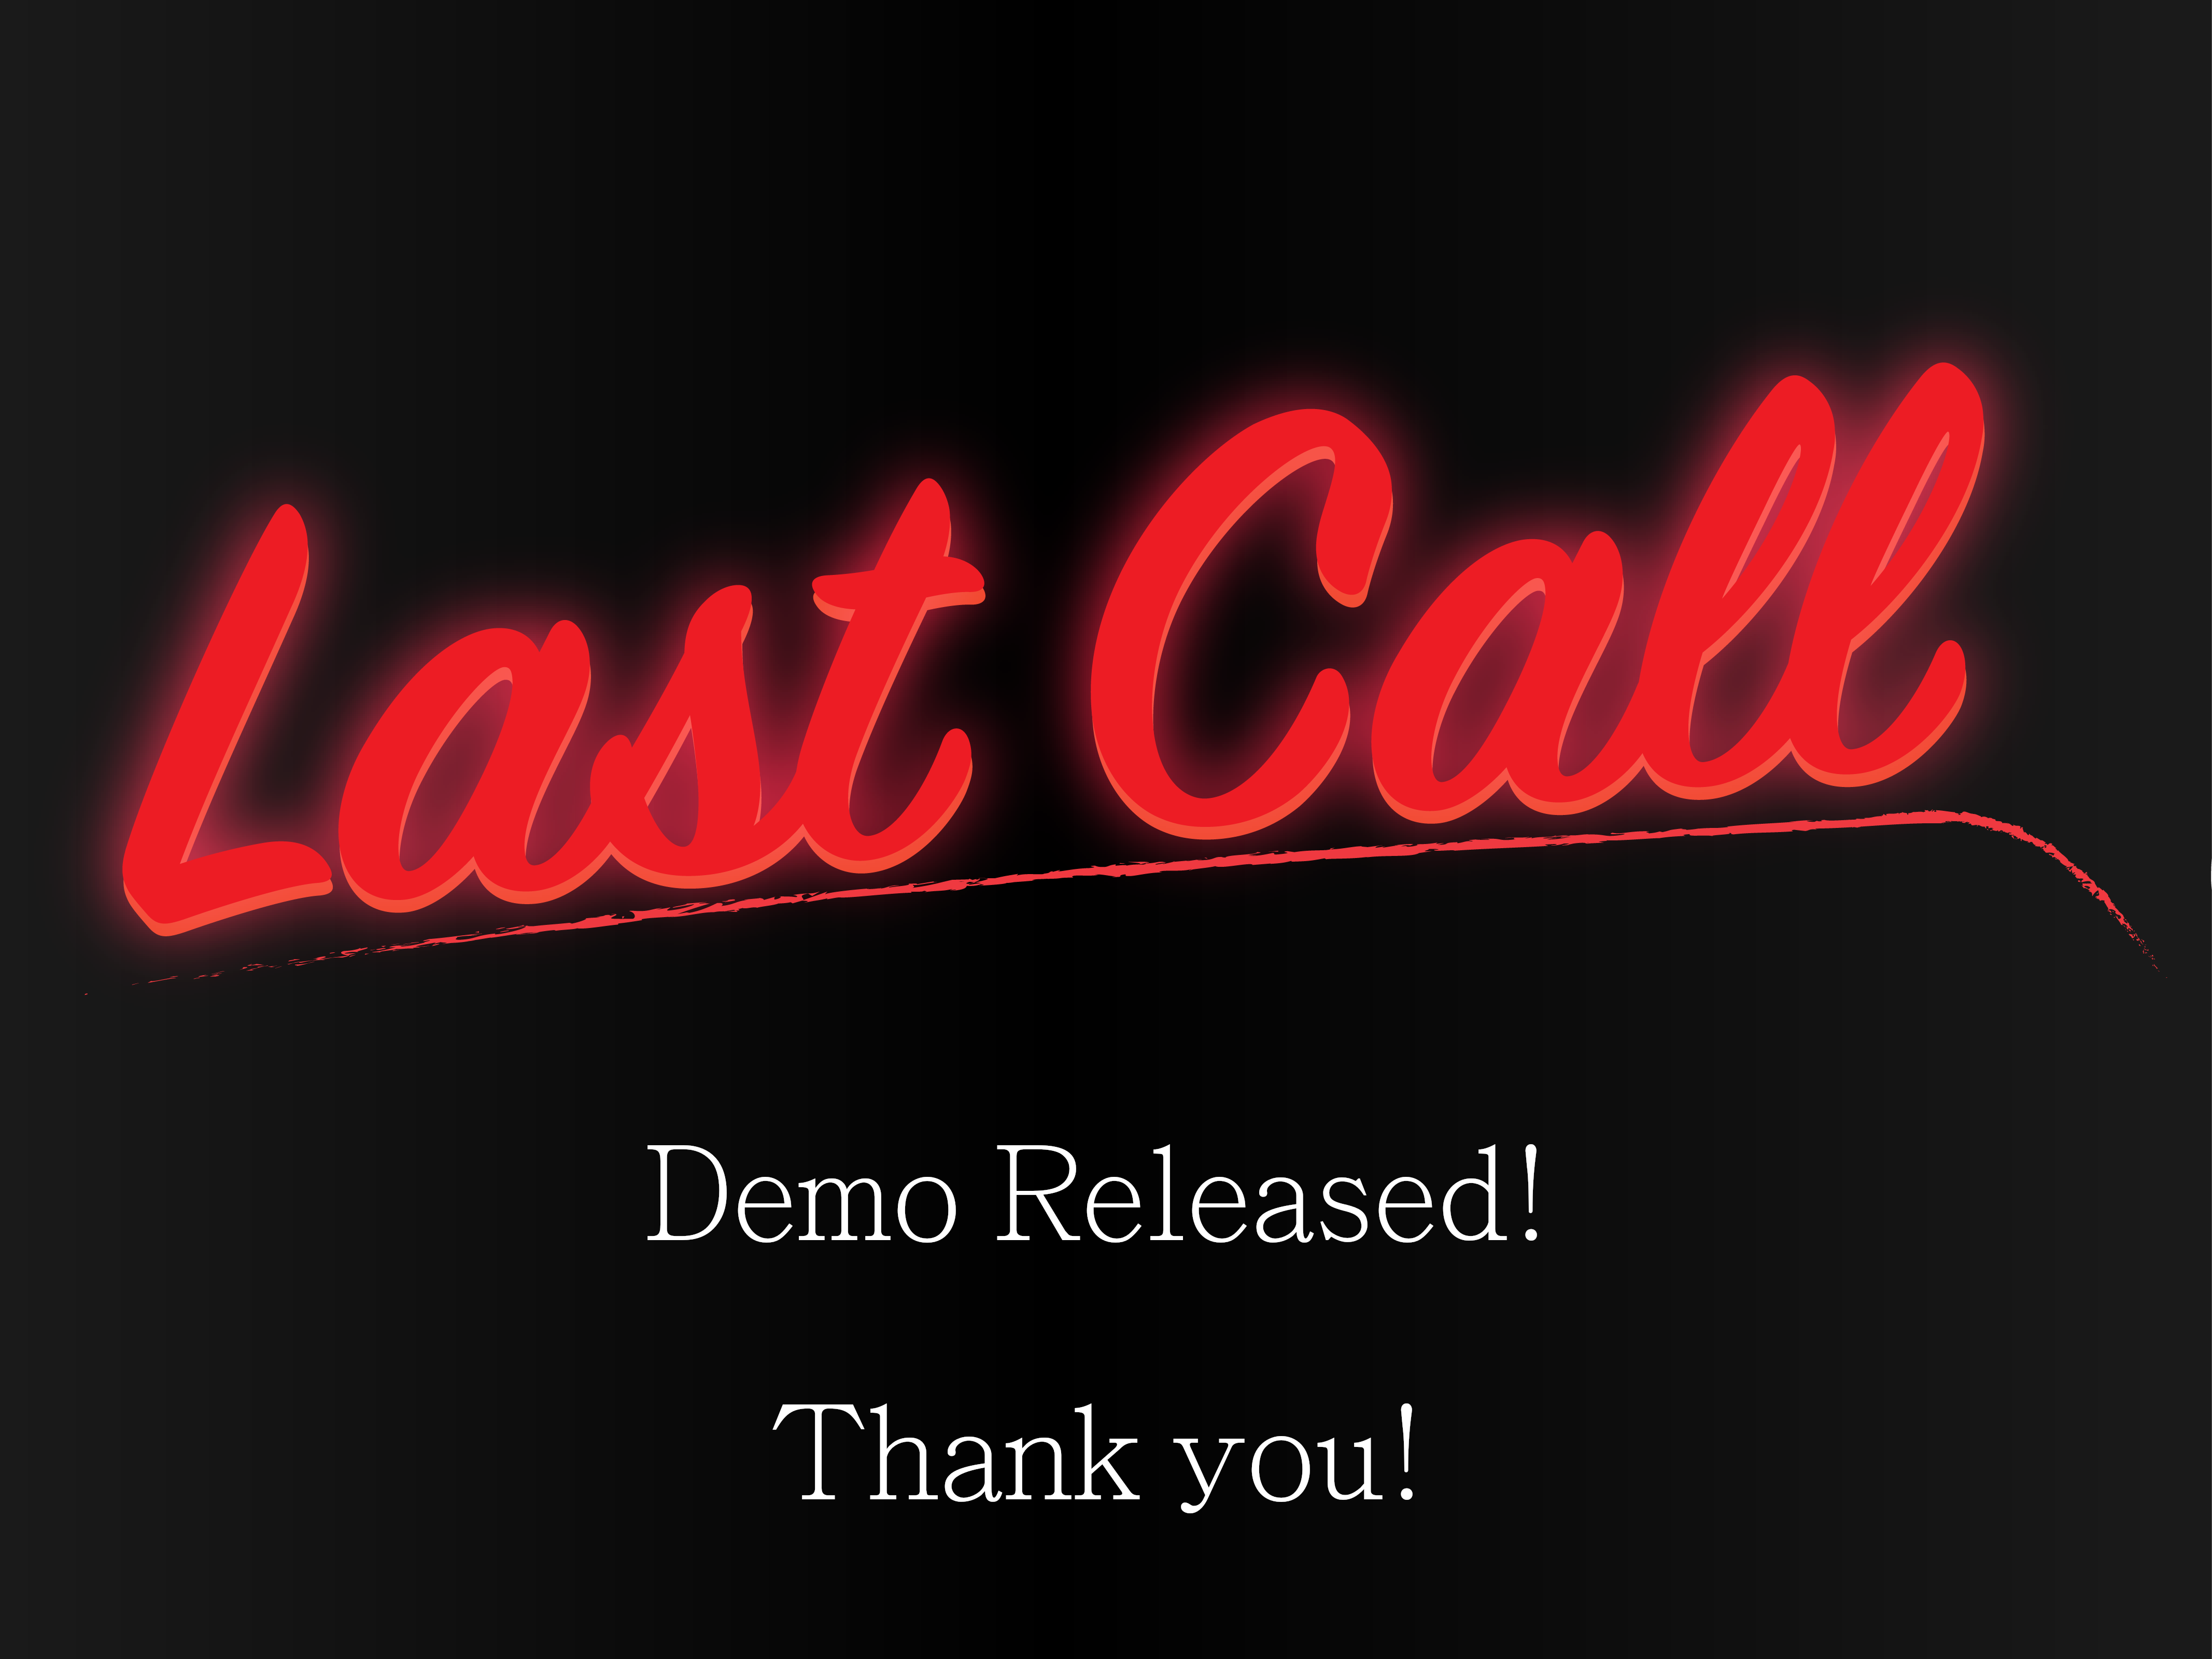 demo released